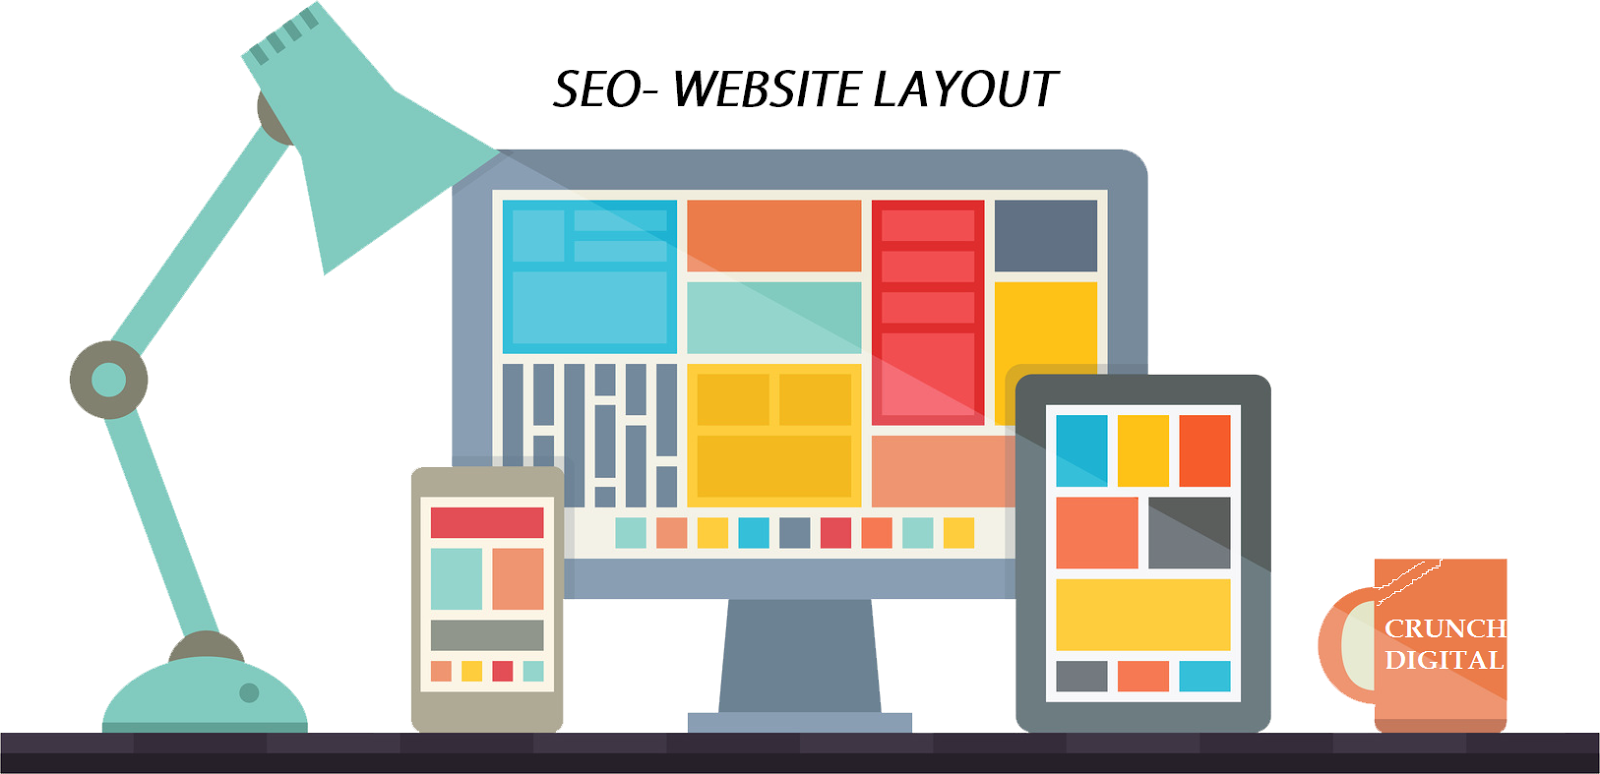 WEBSITE LAYOUT- SEO